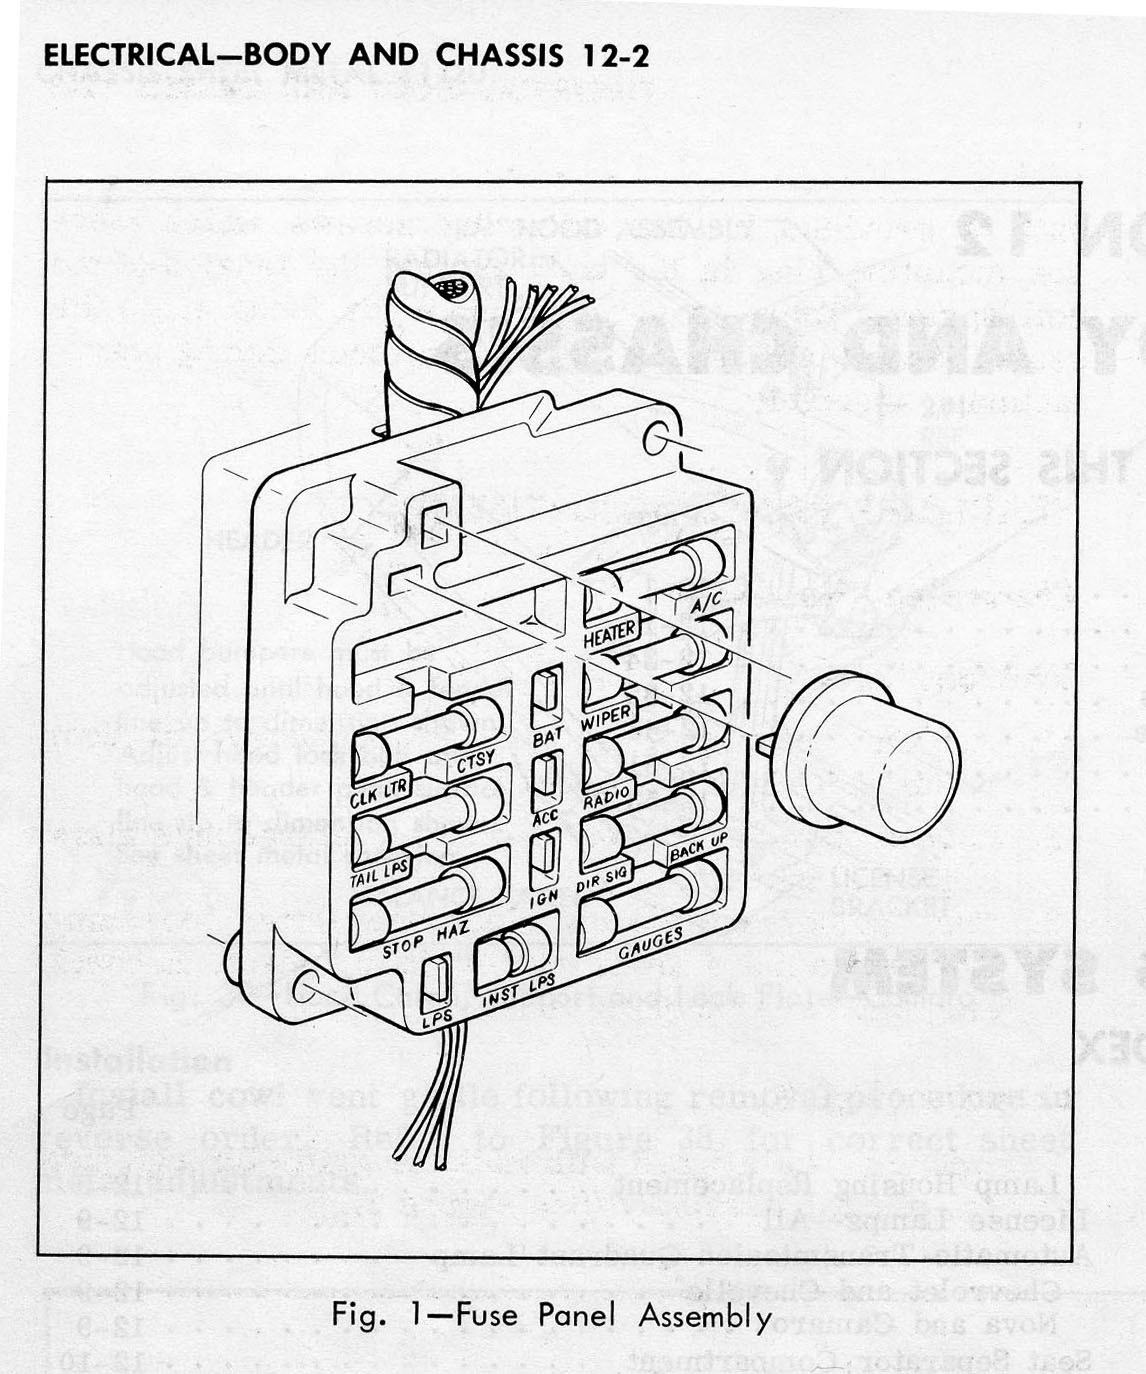 hight resolution of 1969 corvette fuse panel diagram wiring diagram paper1969 corvette fuse box diagram image details 1969 corvette